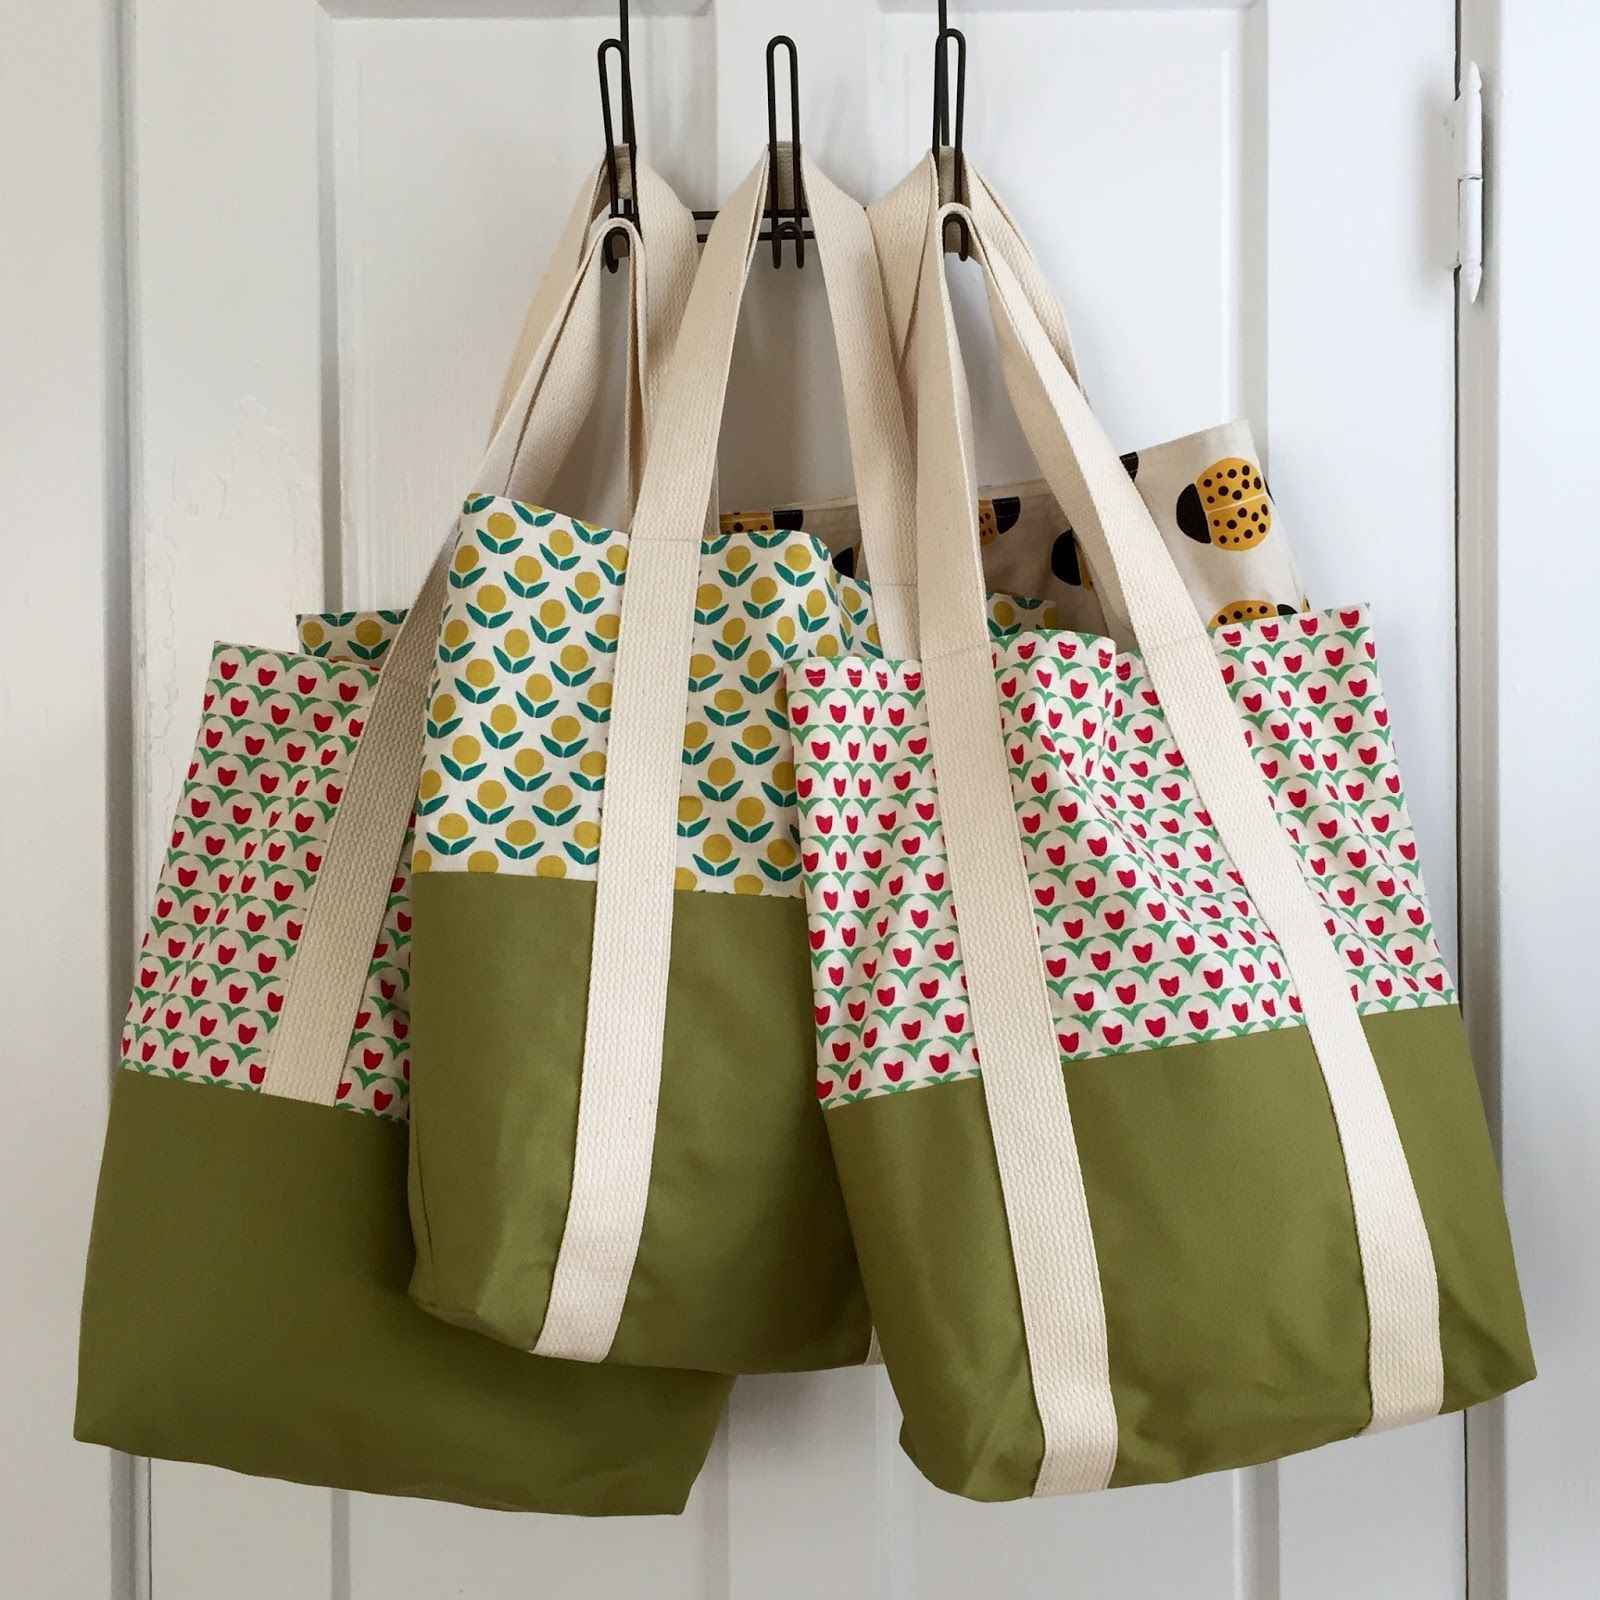 salty oat: quilt studio and fabric shop: summer craft show wrap-up + new tote bags